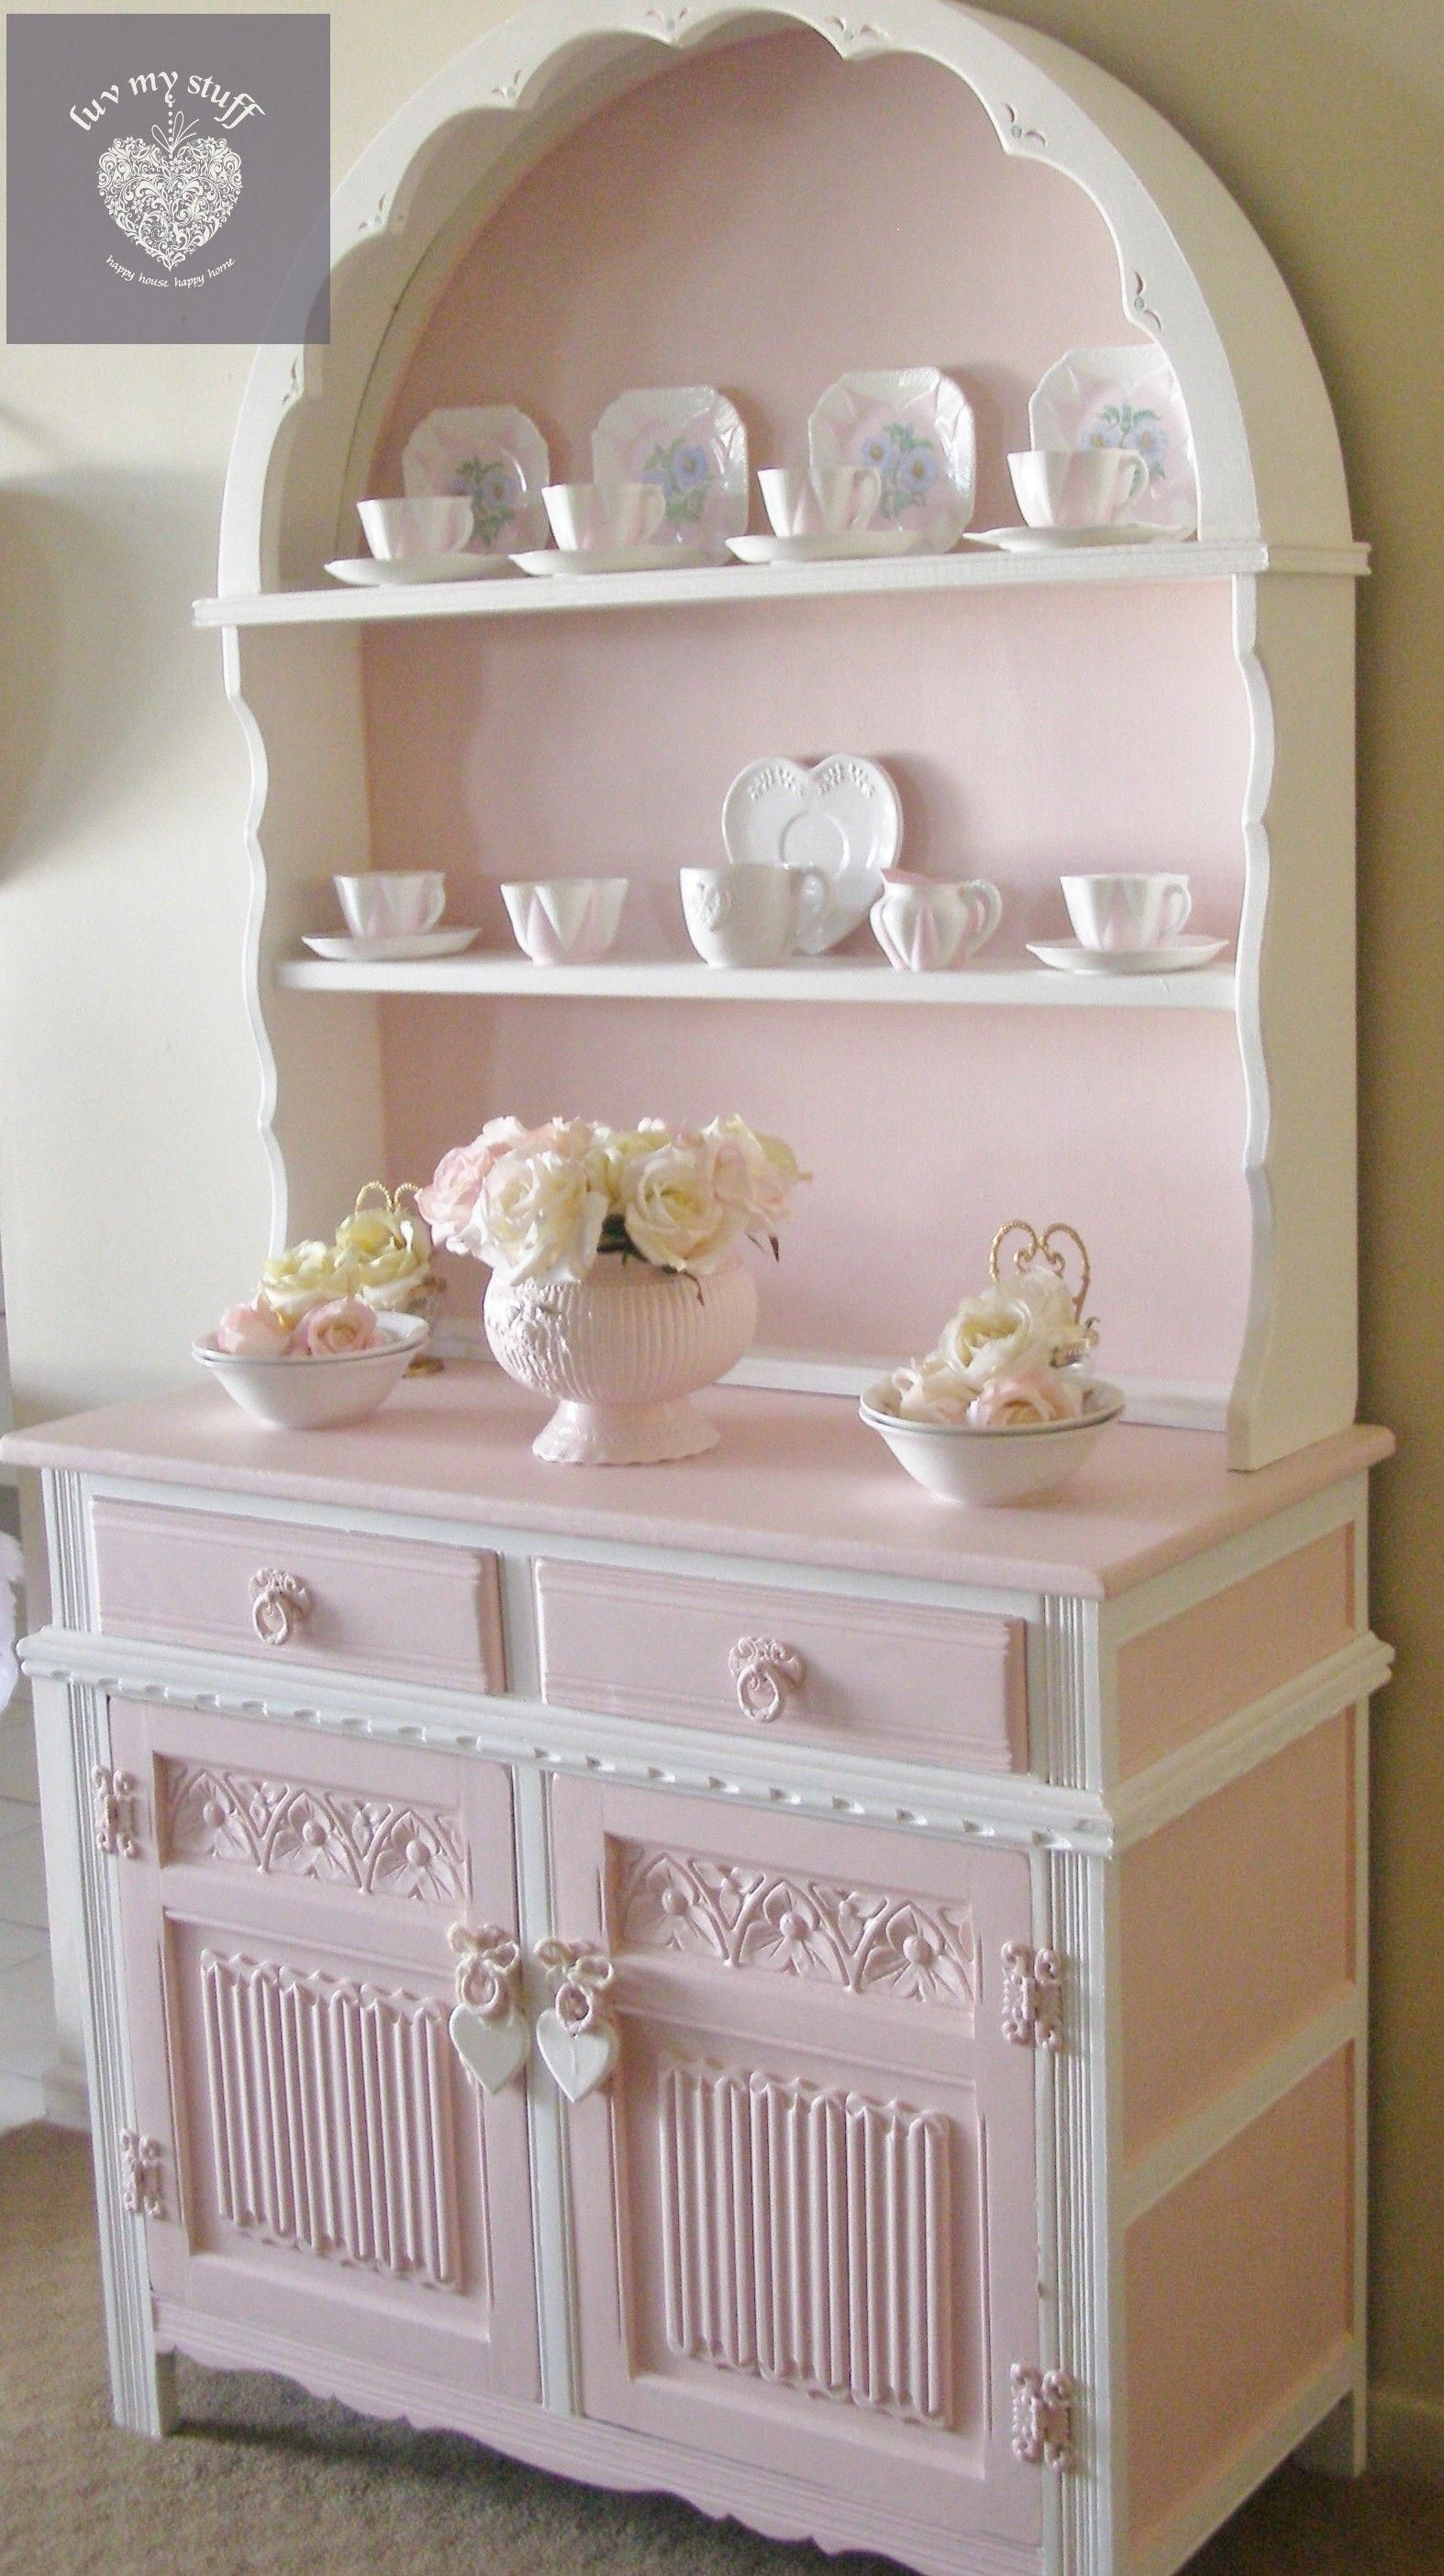 Best Home Decor Consignment Stores Near Me Shabby Chic Room 400 x 300